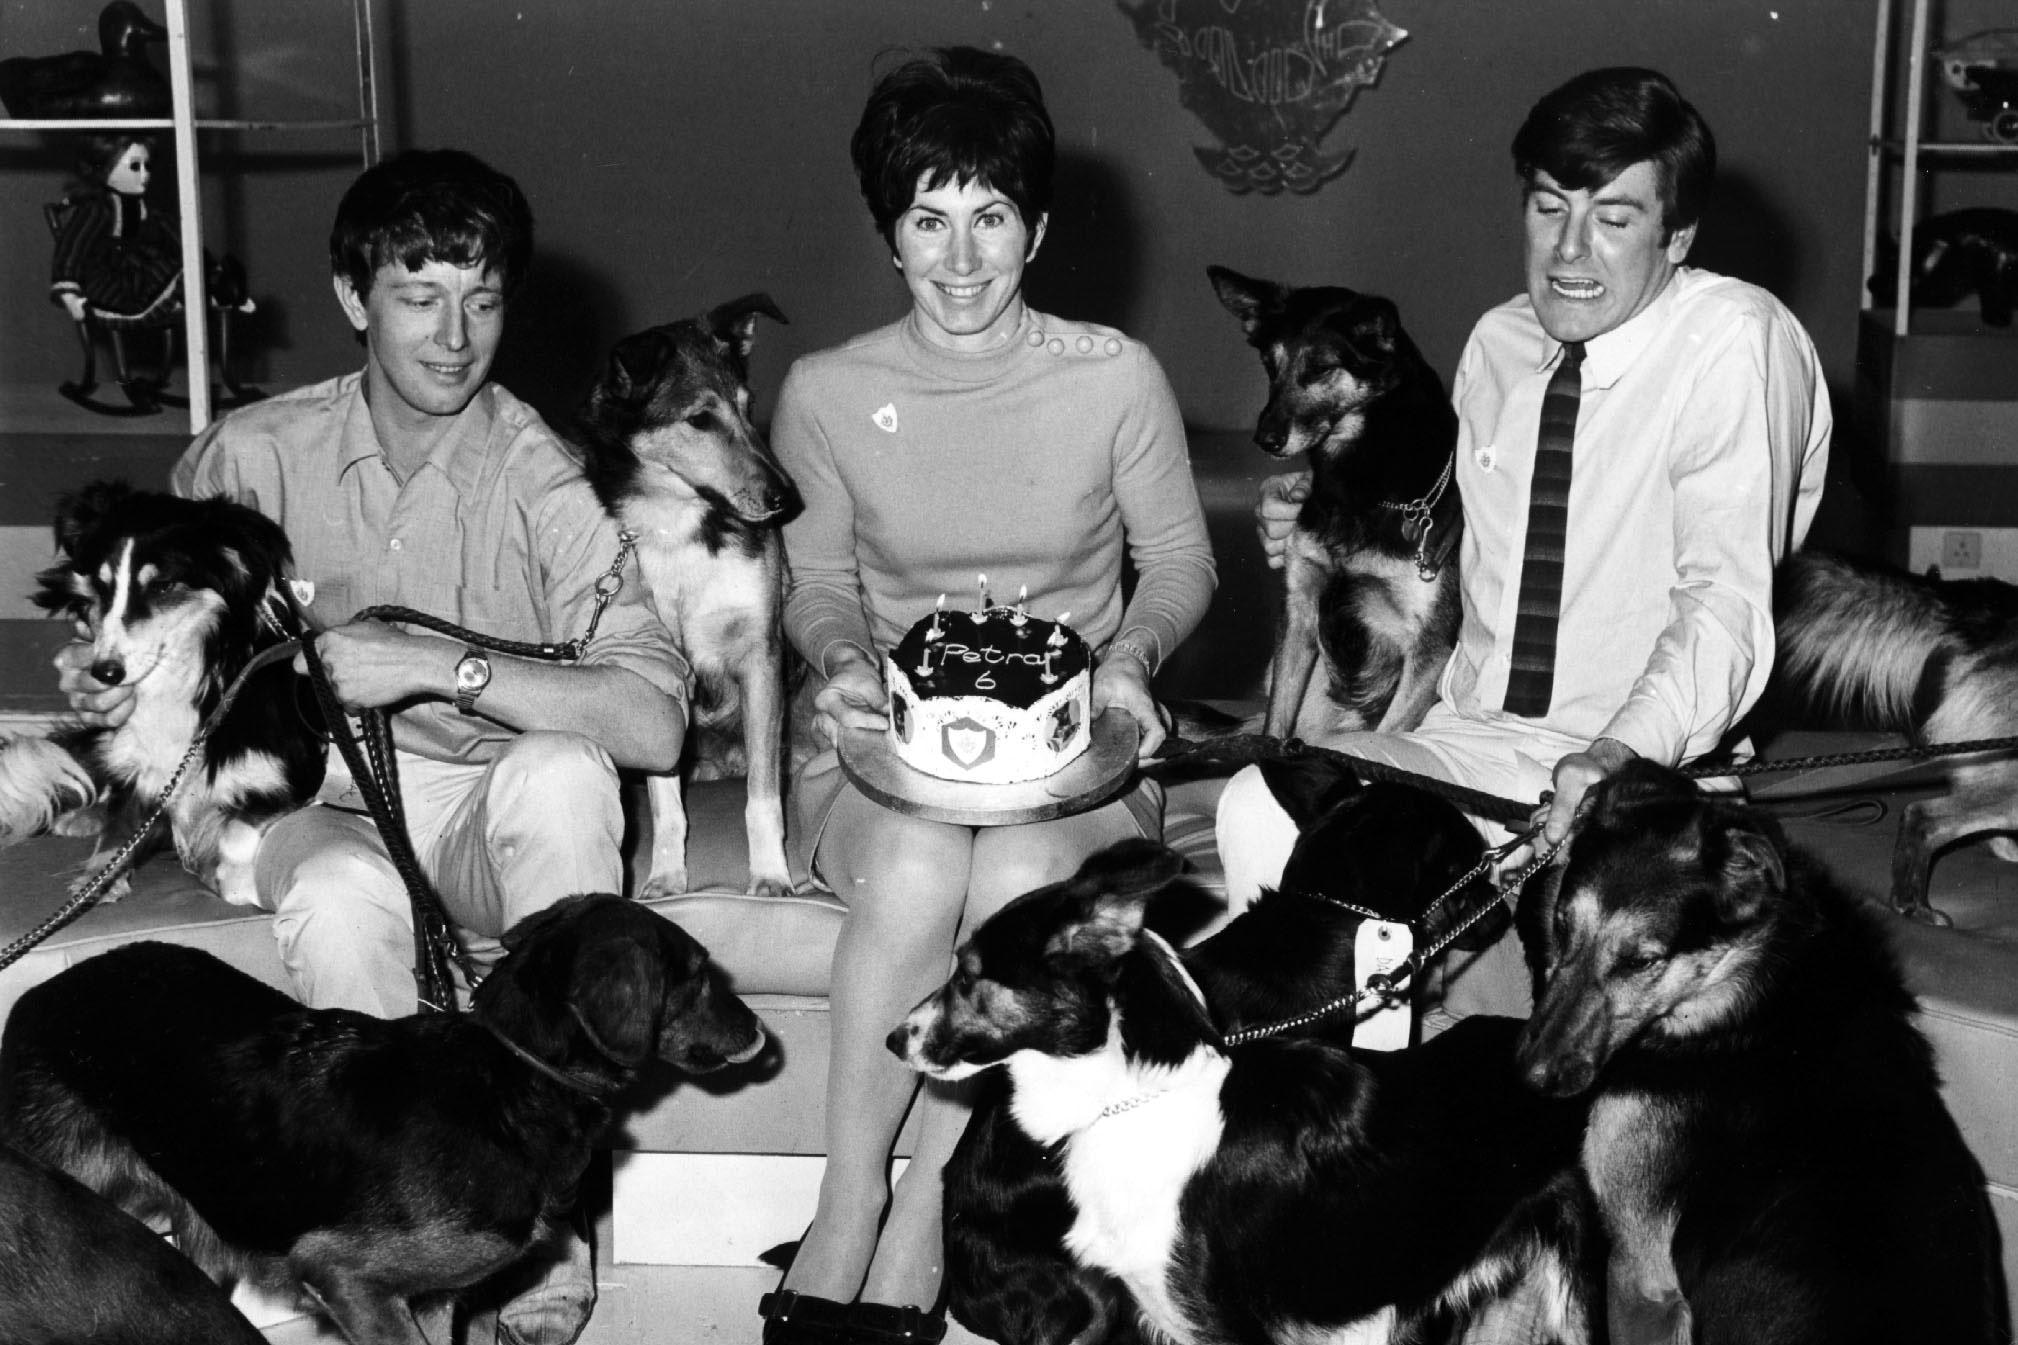 Blue Peter presenters John Noakes, Valerie Singleton and Peter Purves